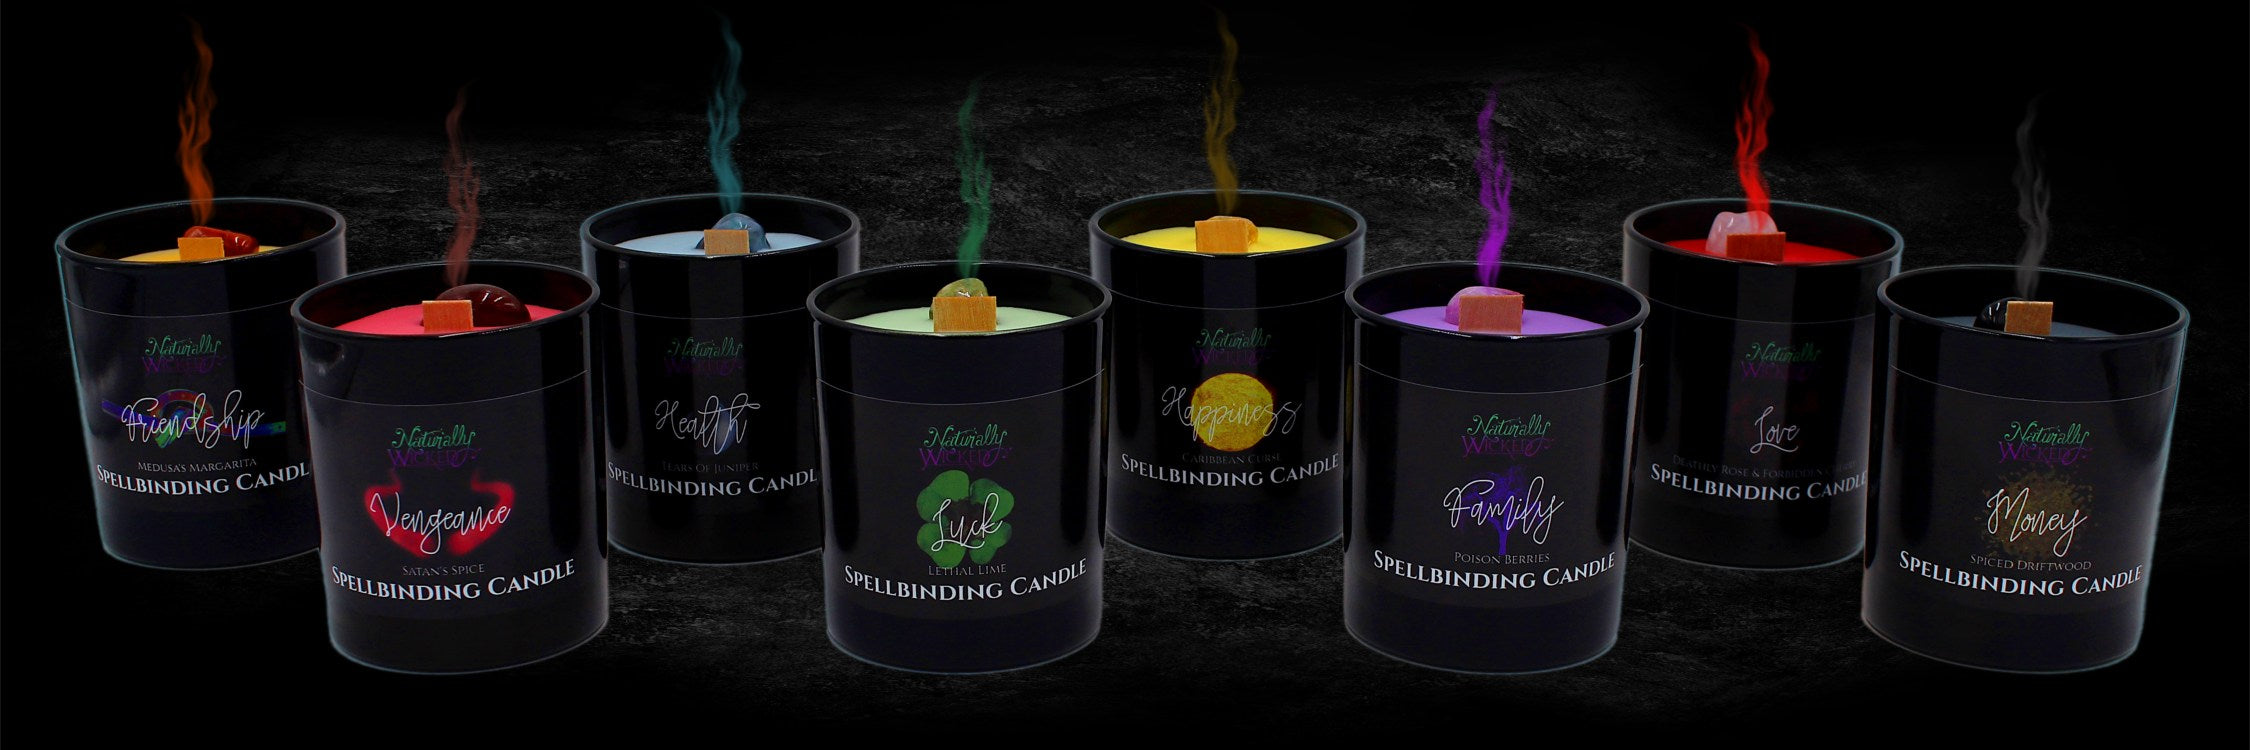 8 Naturally Wicked Spellbinding Candles In Black Gloss Glasses; each labelled with a wicked spell in mesmerising colours